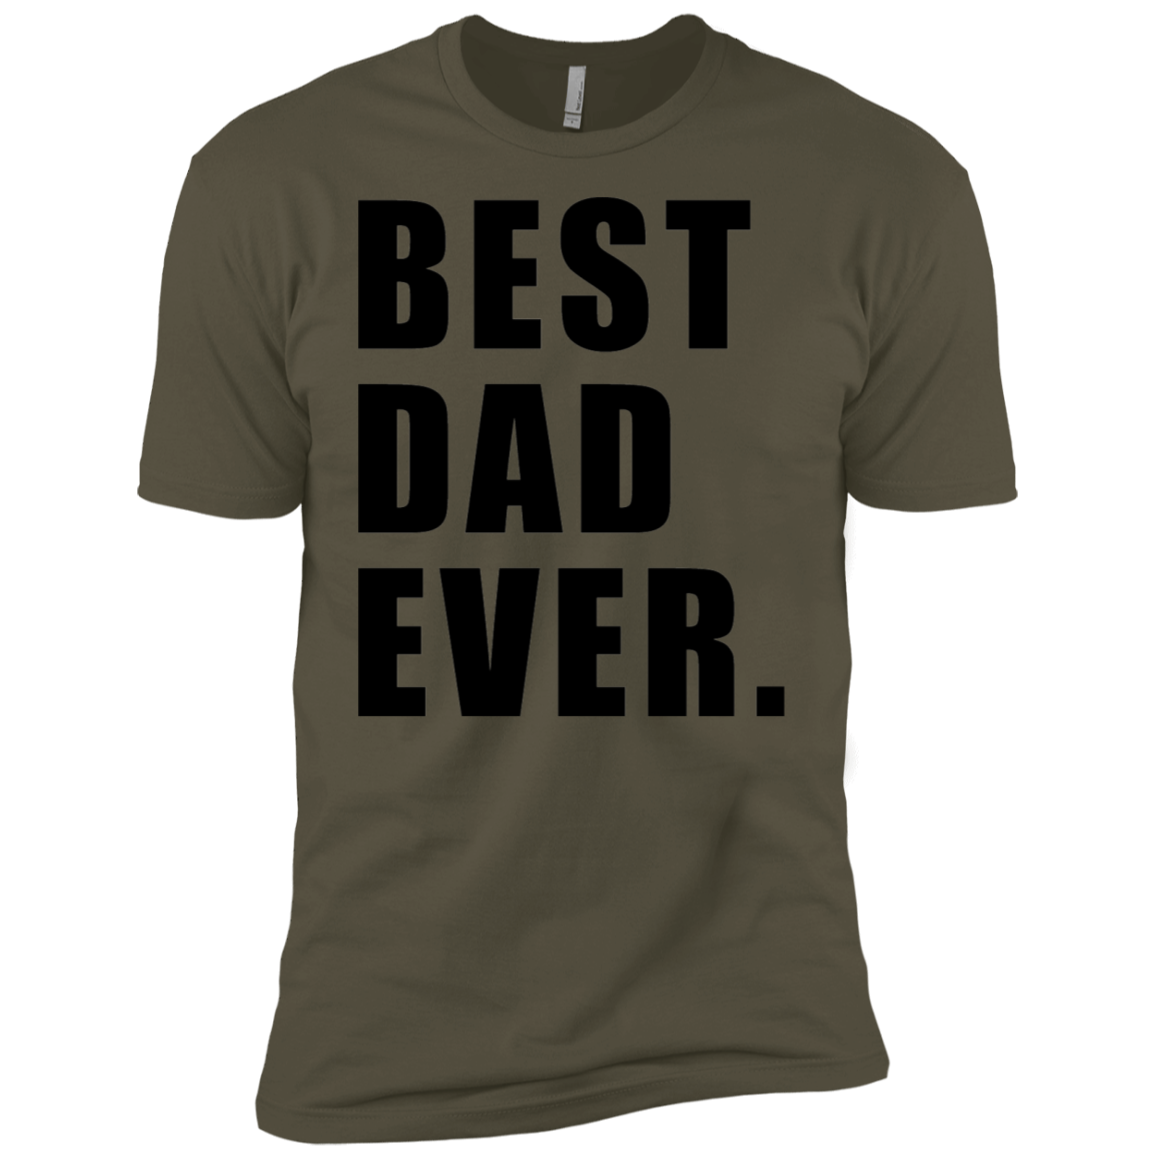 Best Dad Ever Men's Classic Tee - Trendy Tees